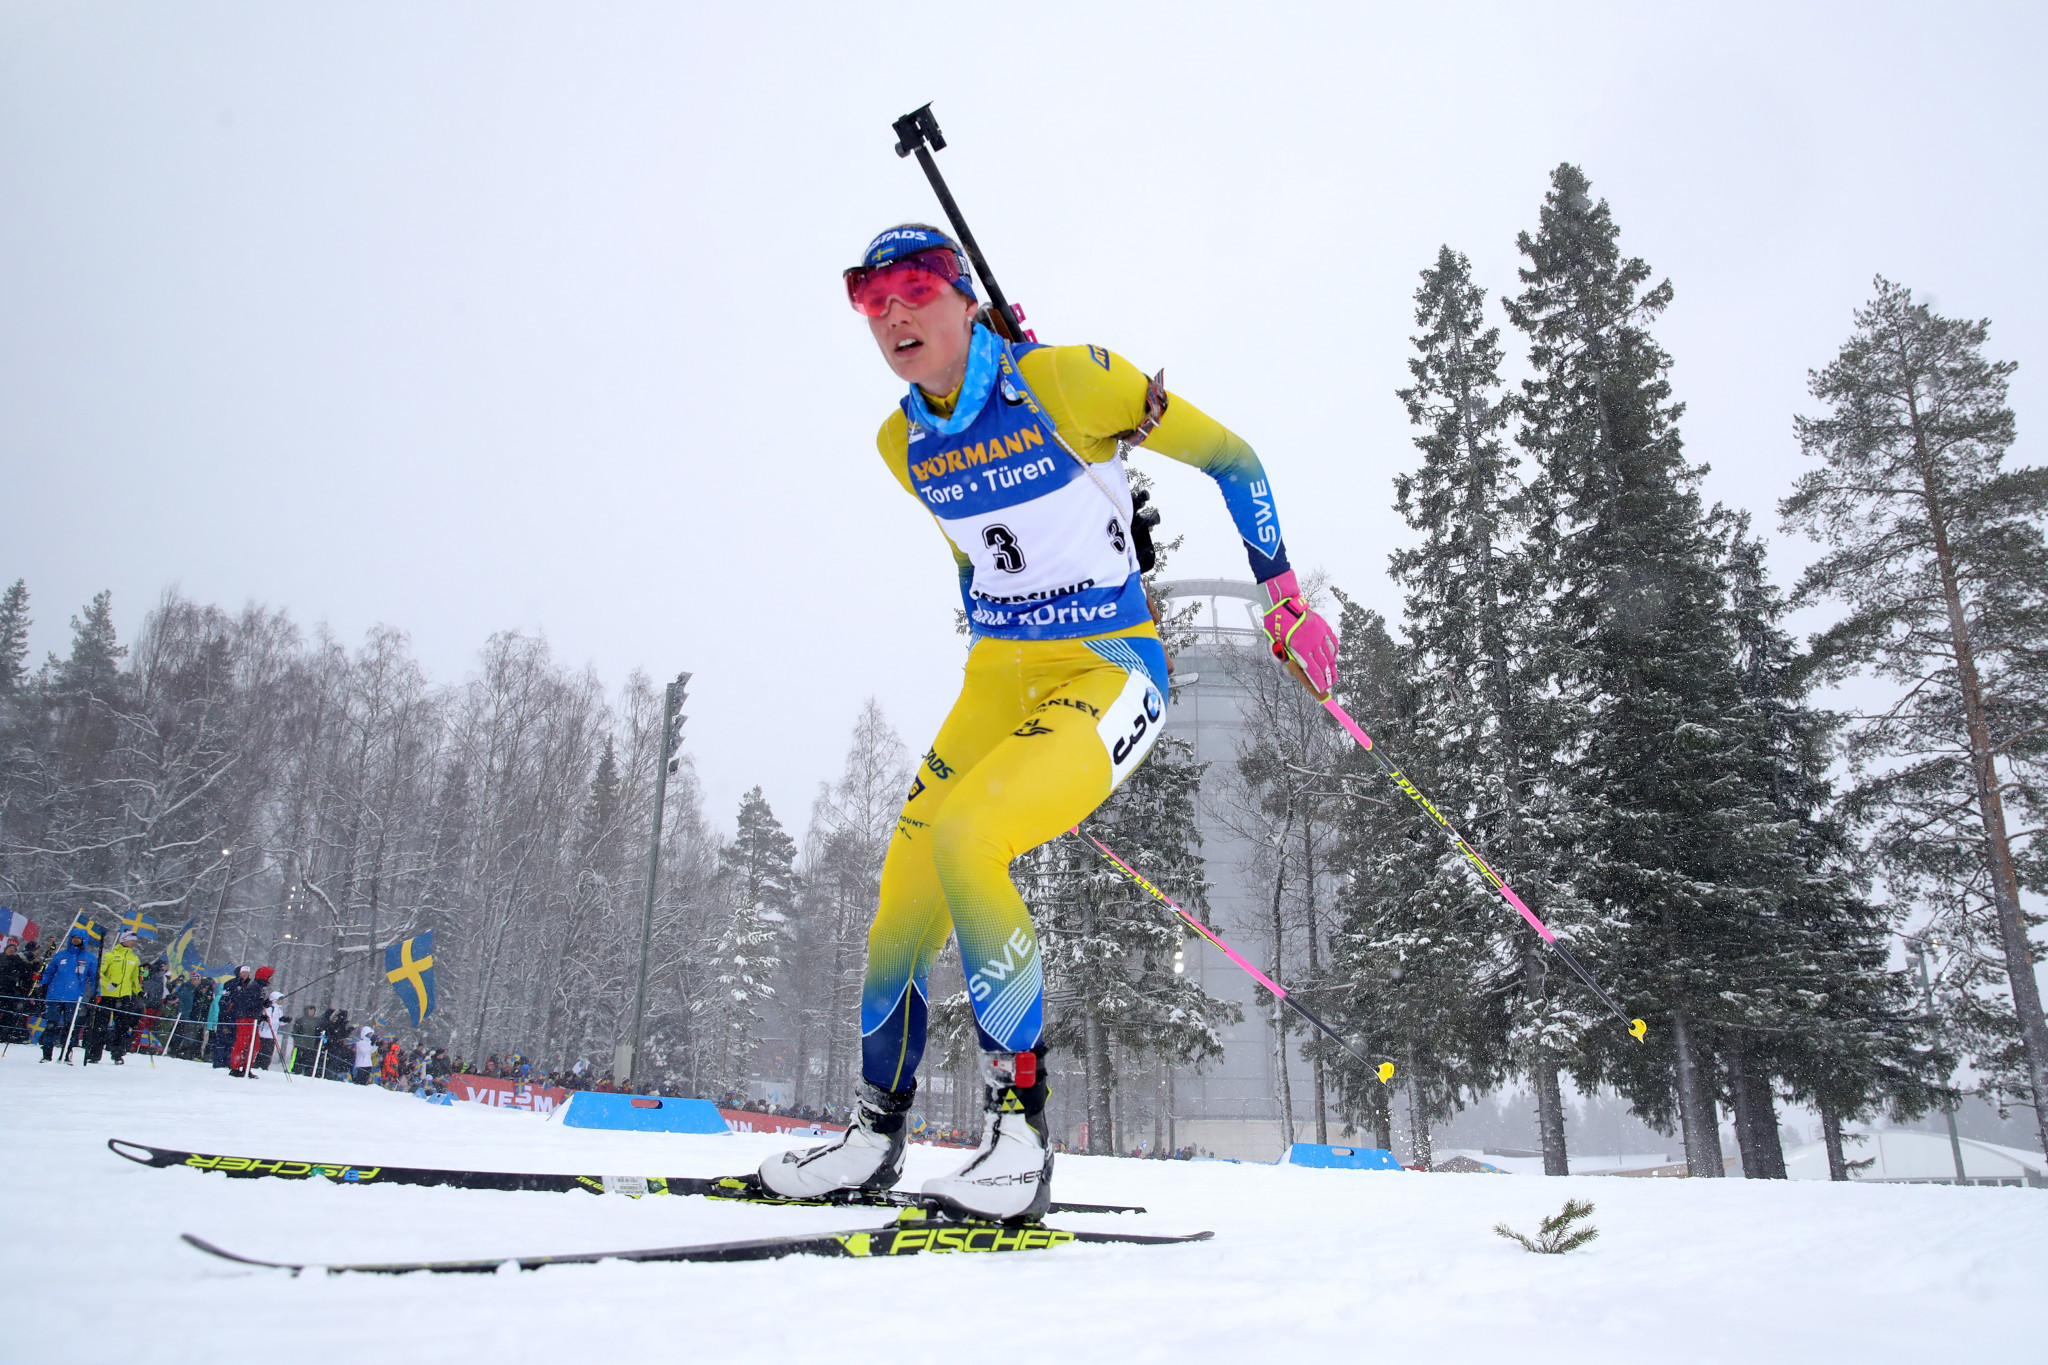 Öberg wins season ending mass start as Wierer becomes first Italian to claim overall IBU World Cup title